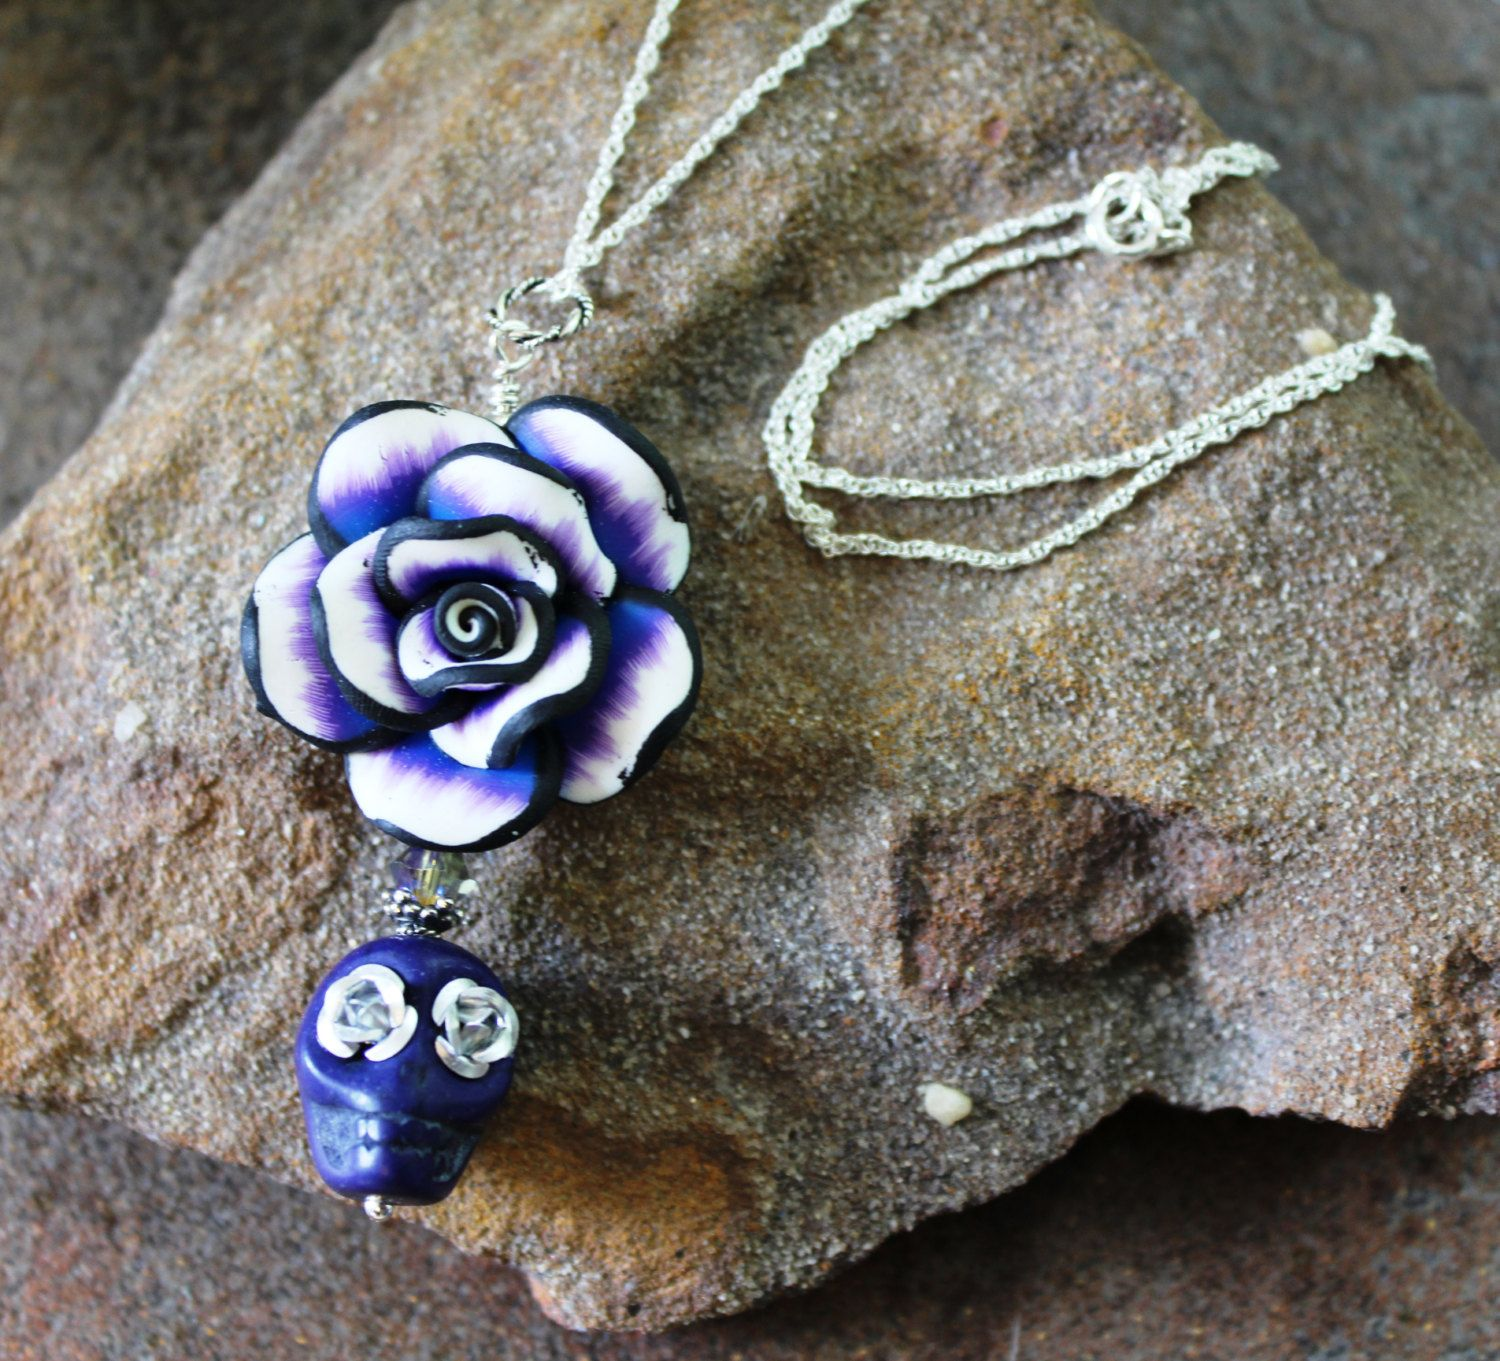 Sugar Skull with Rose Necklace | Cobalt Blue Skull with Silver Eyes | Sterling Silver | Day of the Dead Necklace | Halloween Jewelry | Goth by JensFancy on Etsy